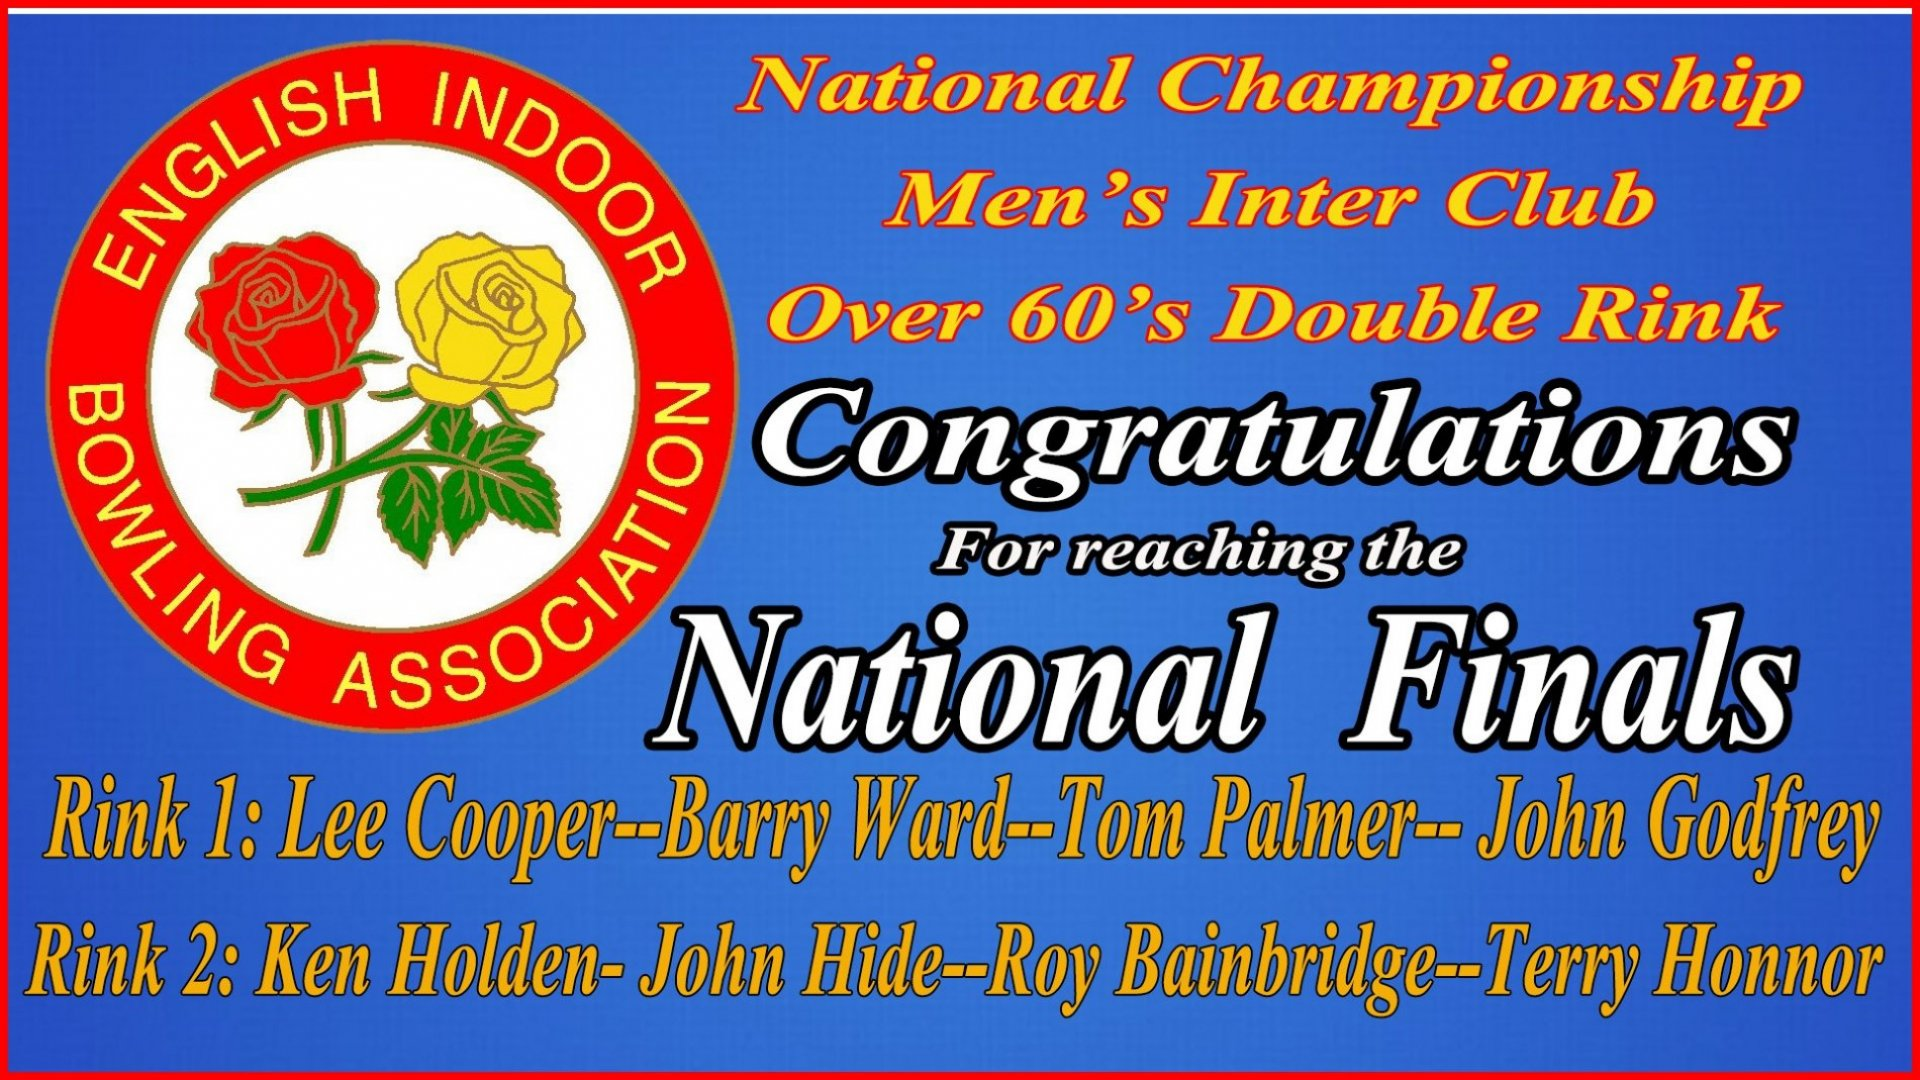 National Championship Men's Inter Club - Over 60's double rink - National  Finals Congratulations (12.4.18)